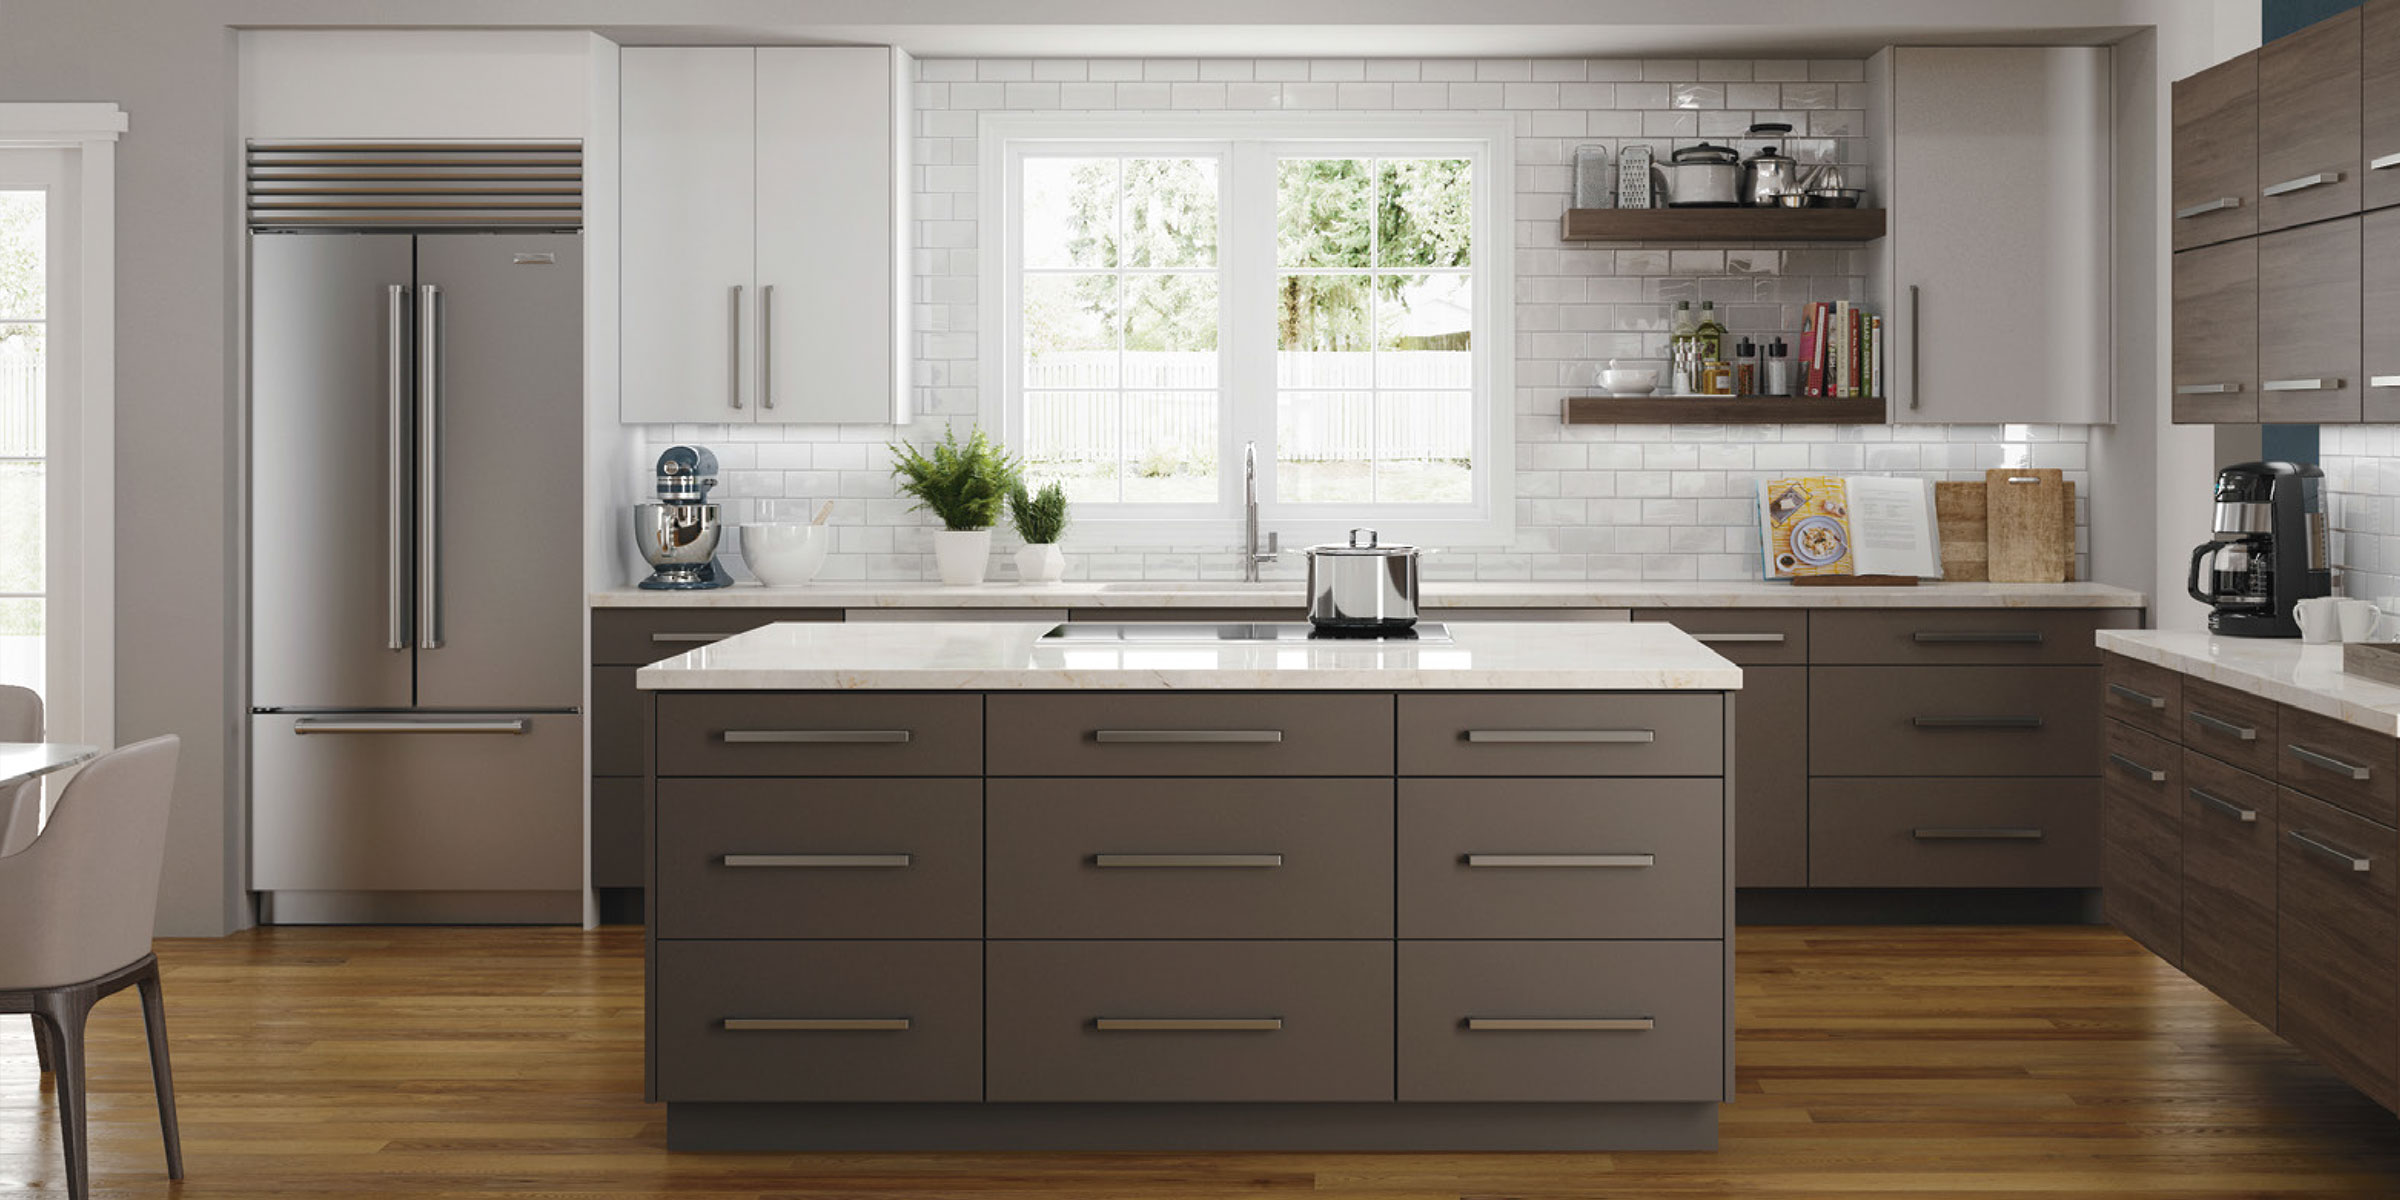 Era Cabinetry Cabinetry Designs